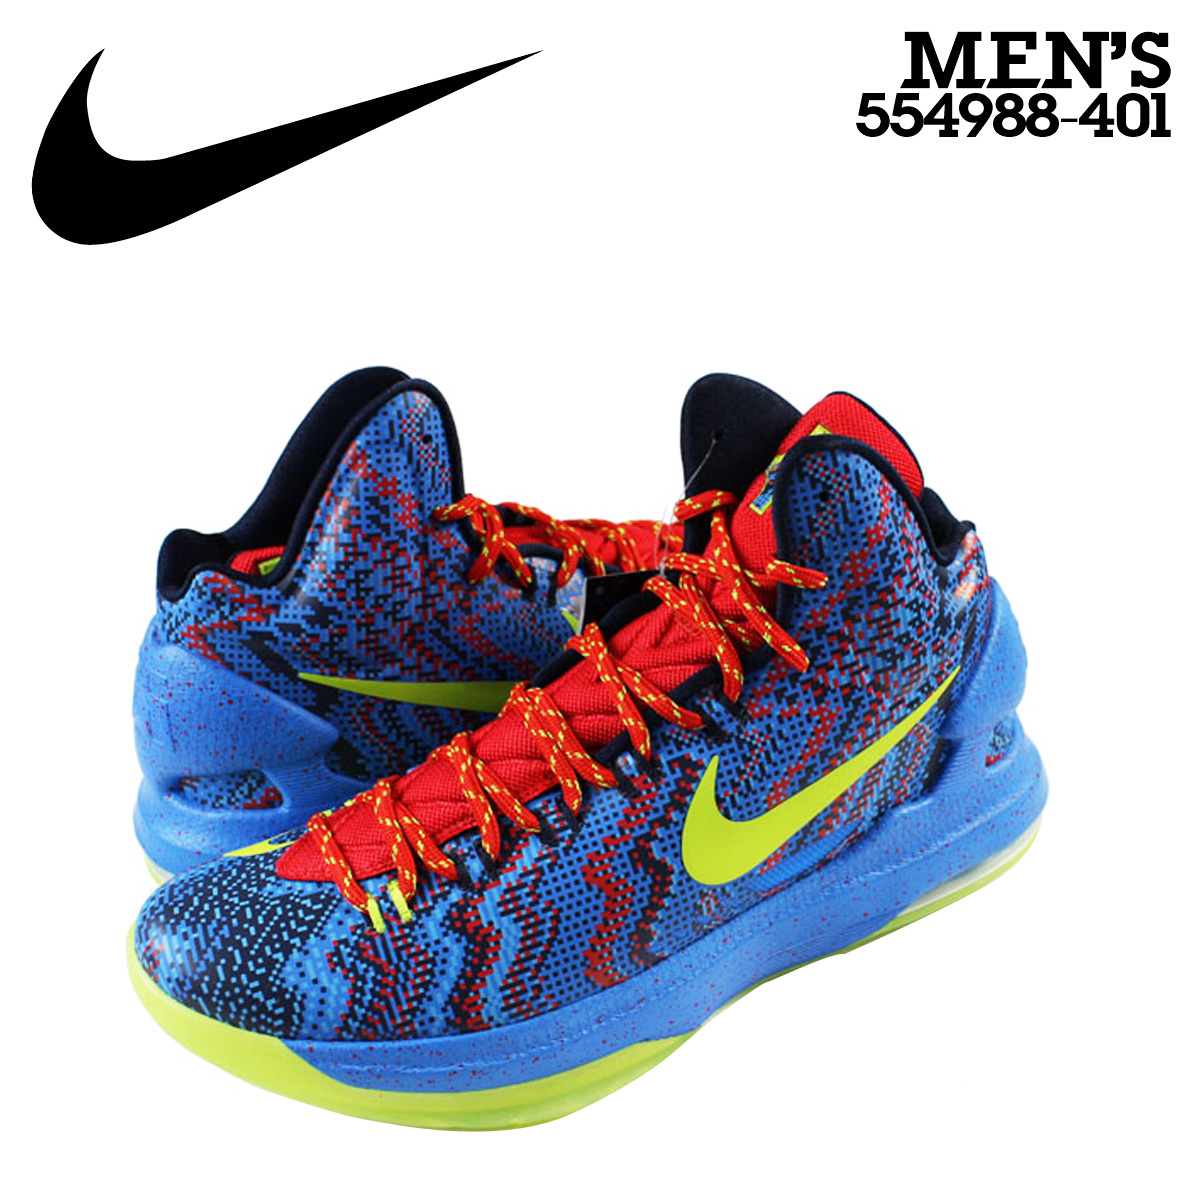 finest selection 2444c 4cd56 Nike NIKE zoom sneakers ZOOM KD 5 CHRISTMAS EDITION 2 K 12 Kevin Durant  Christmas 554988-401 mens blue